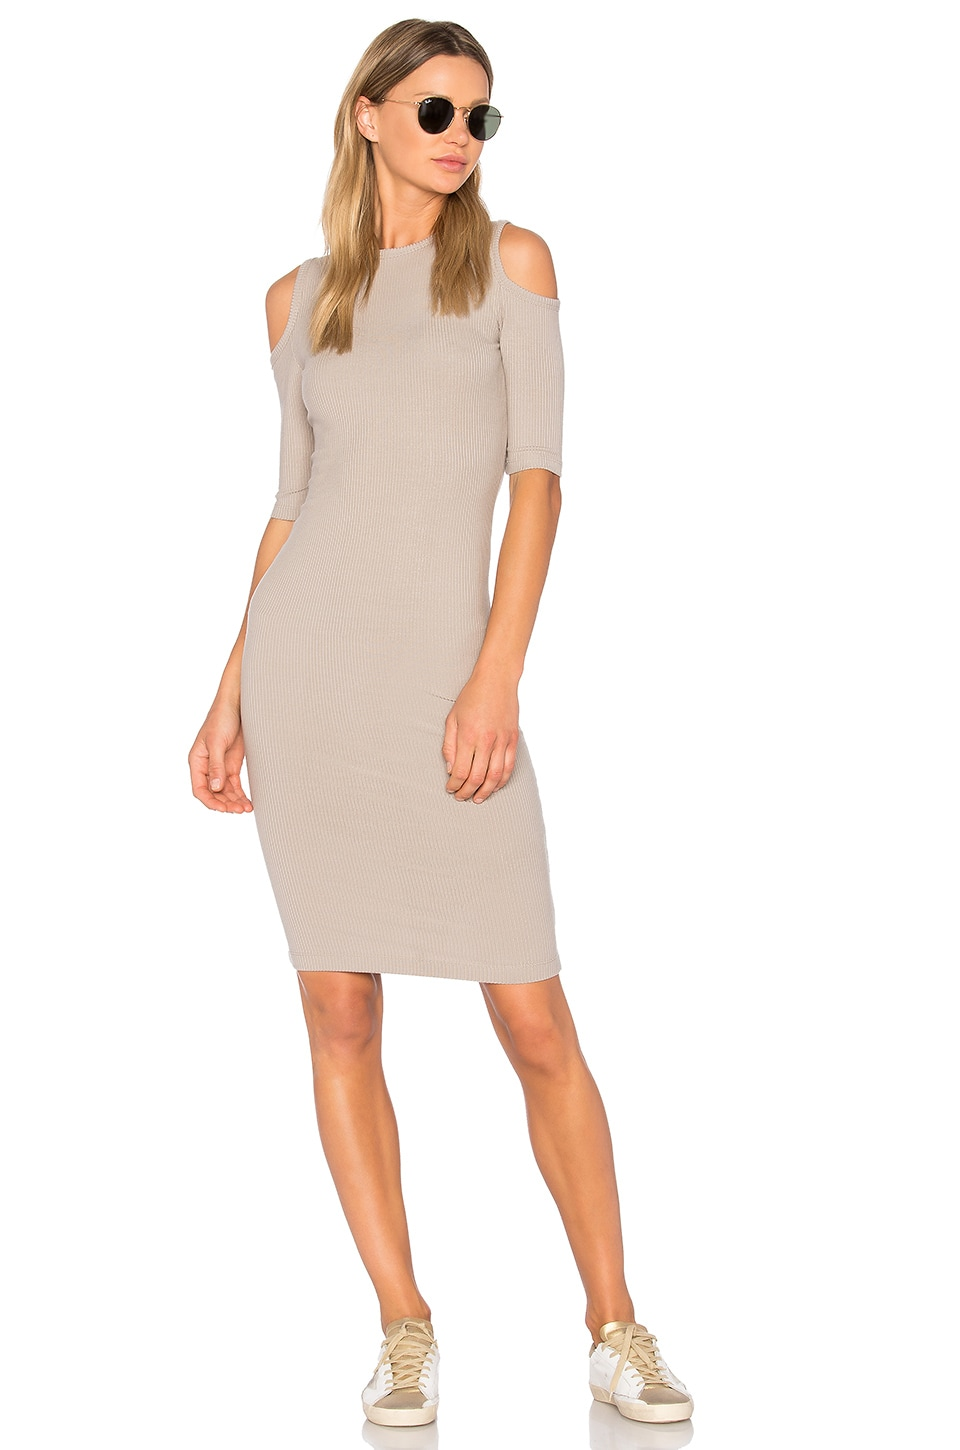 sen Korie Dress in Cobblestone